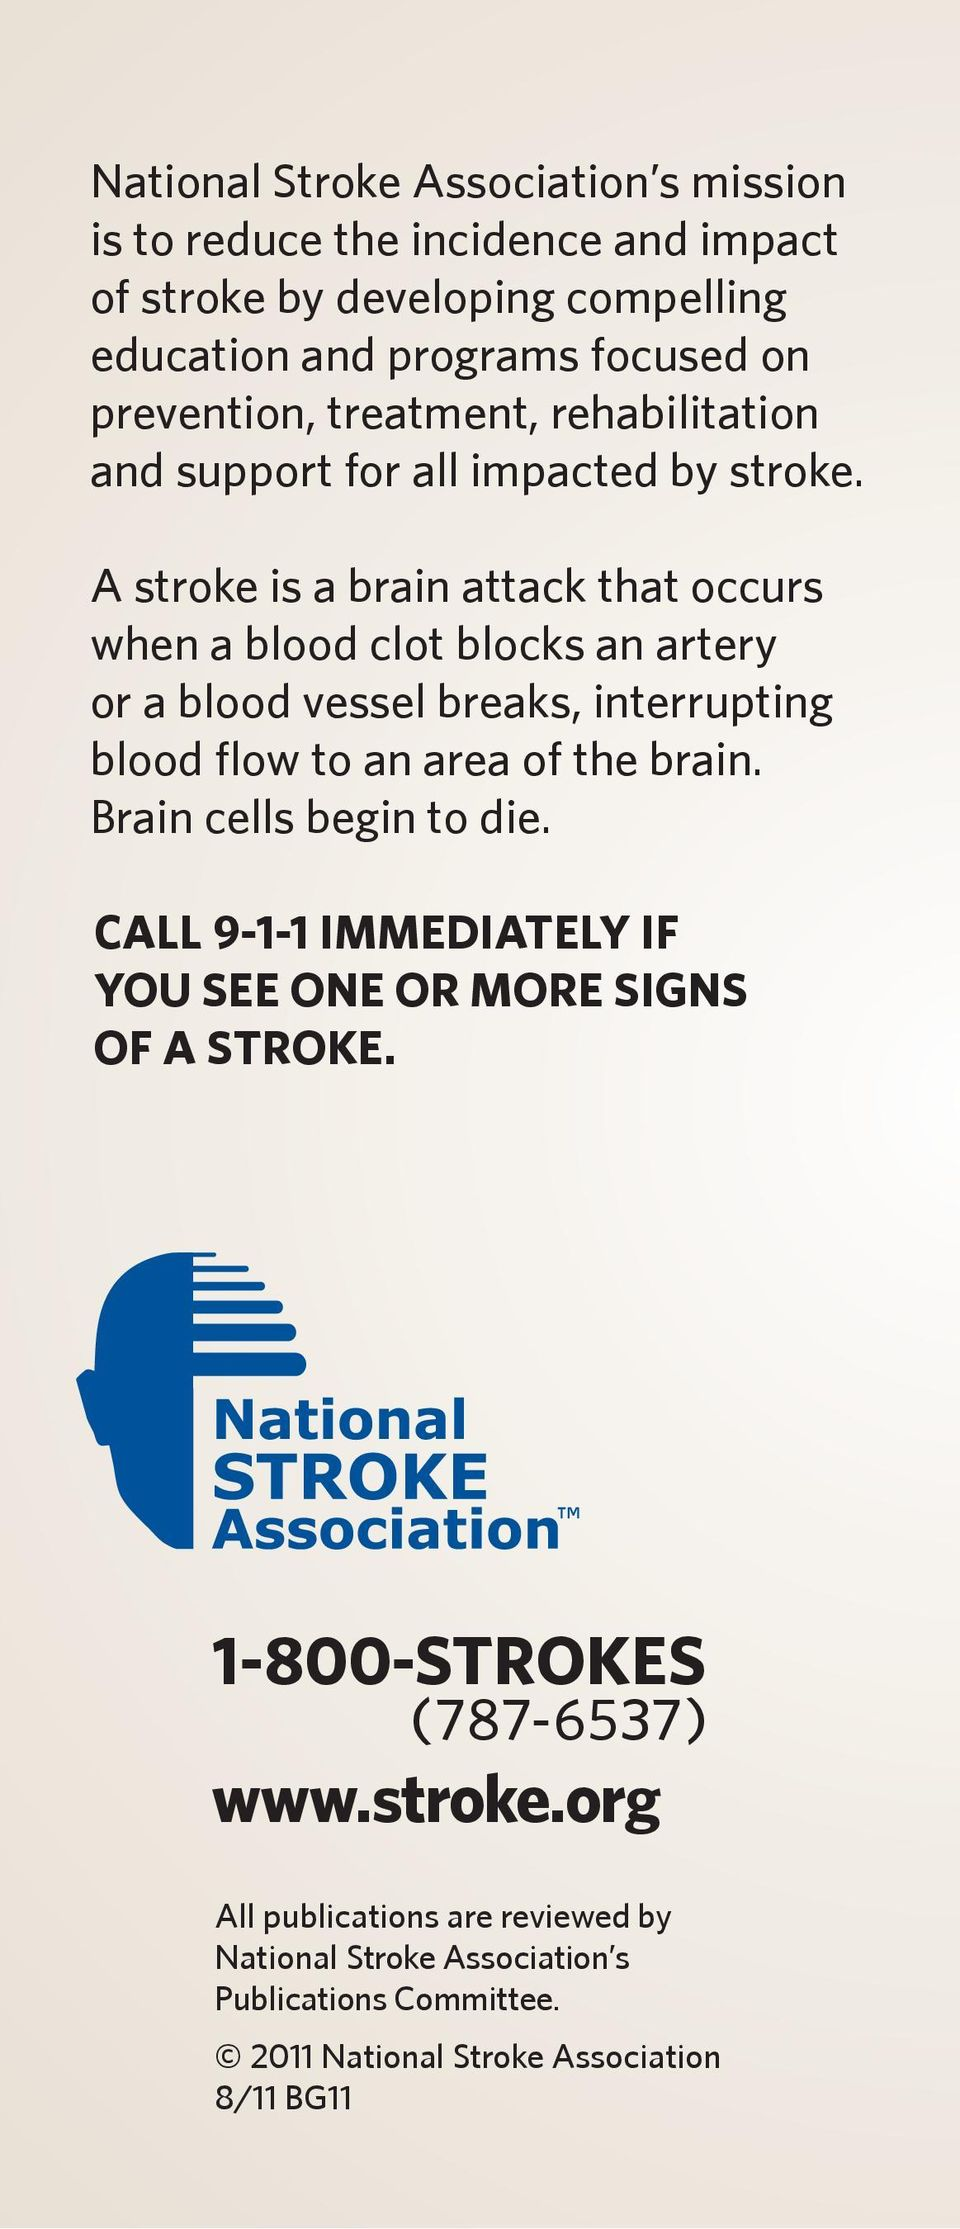 A stroke is a brain attack that occurs when a blood clot blocks an artery or a blood vessel breaks, interrupting blood flow to an area of the brain.